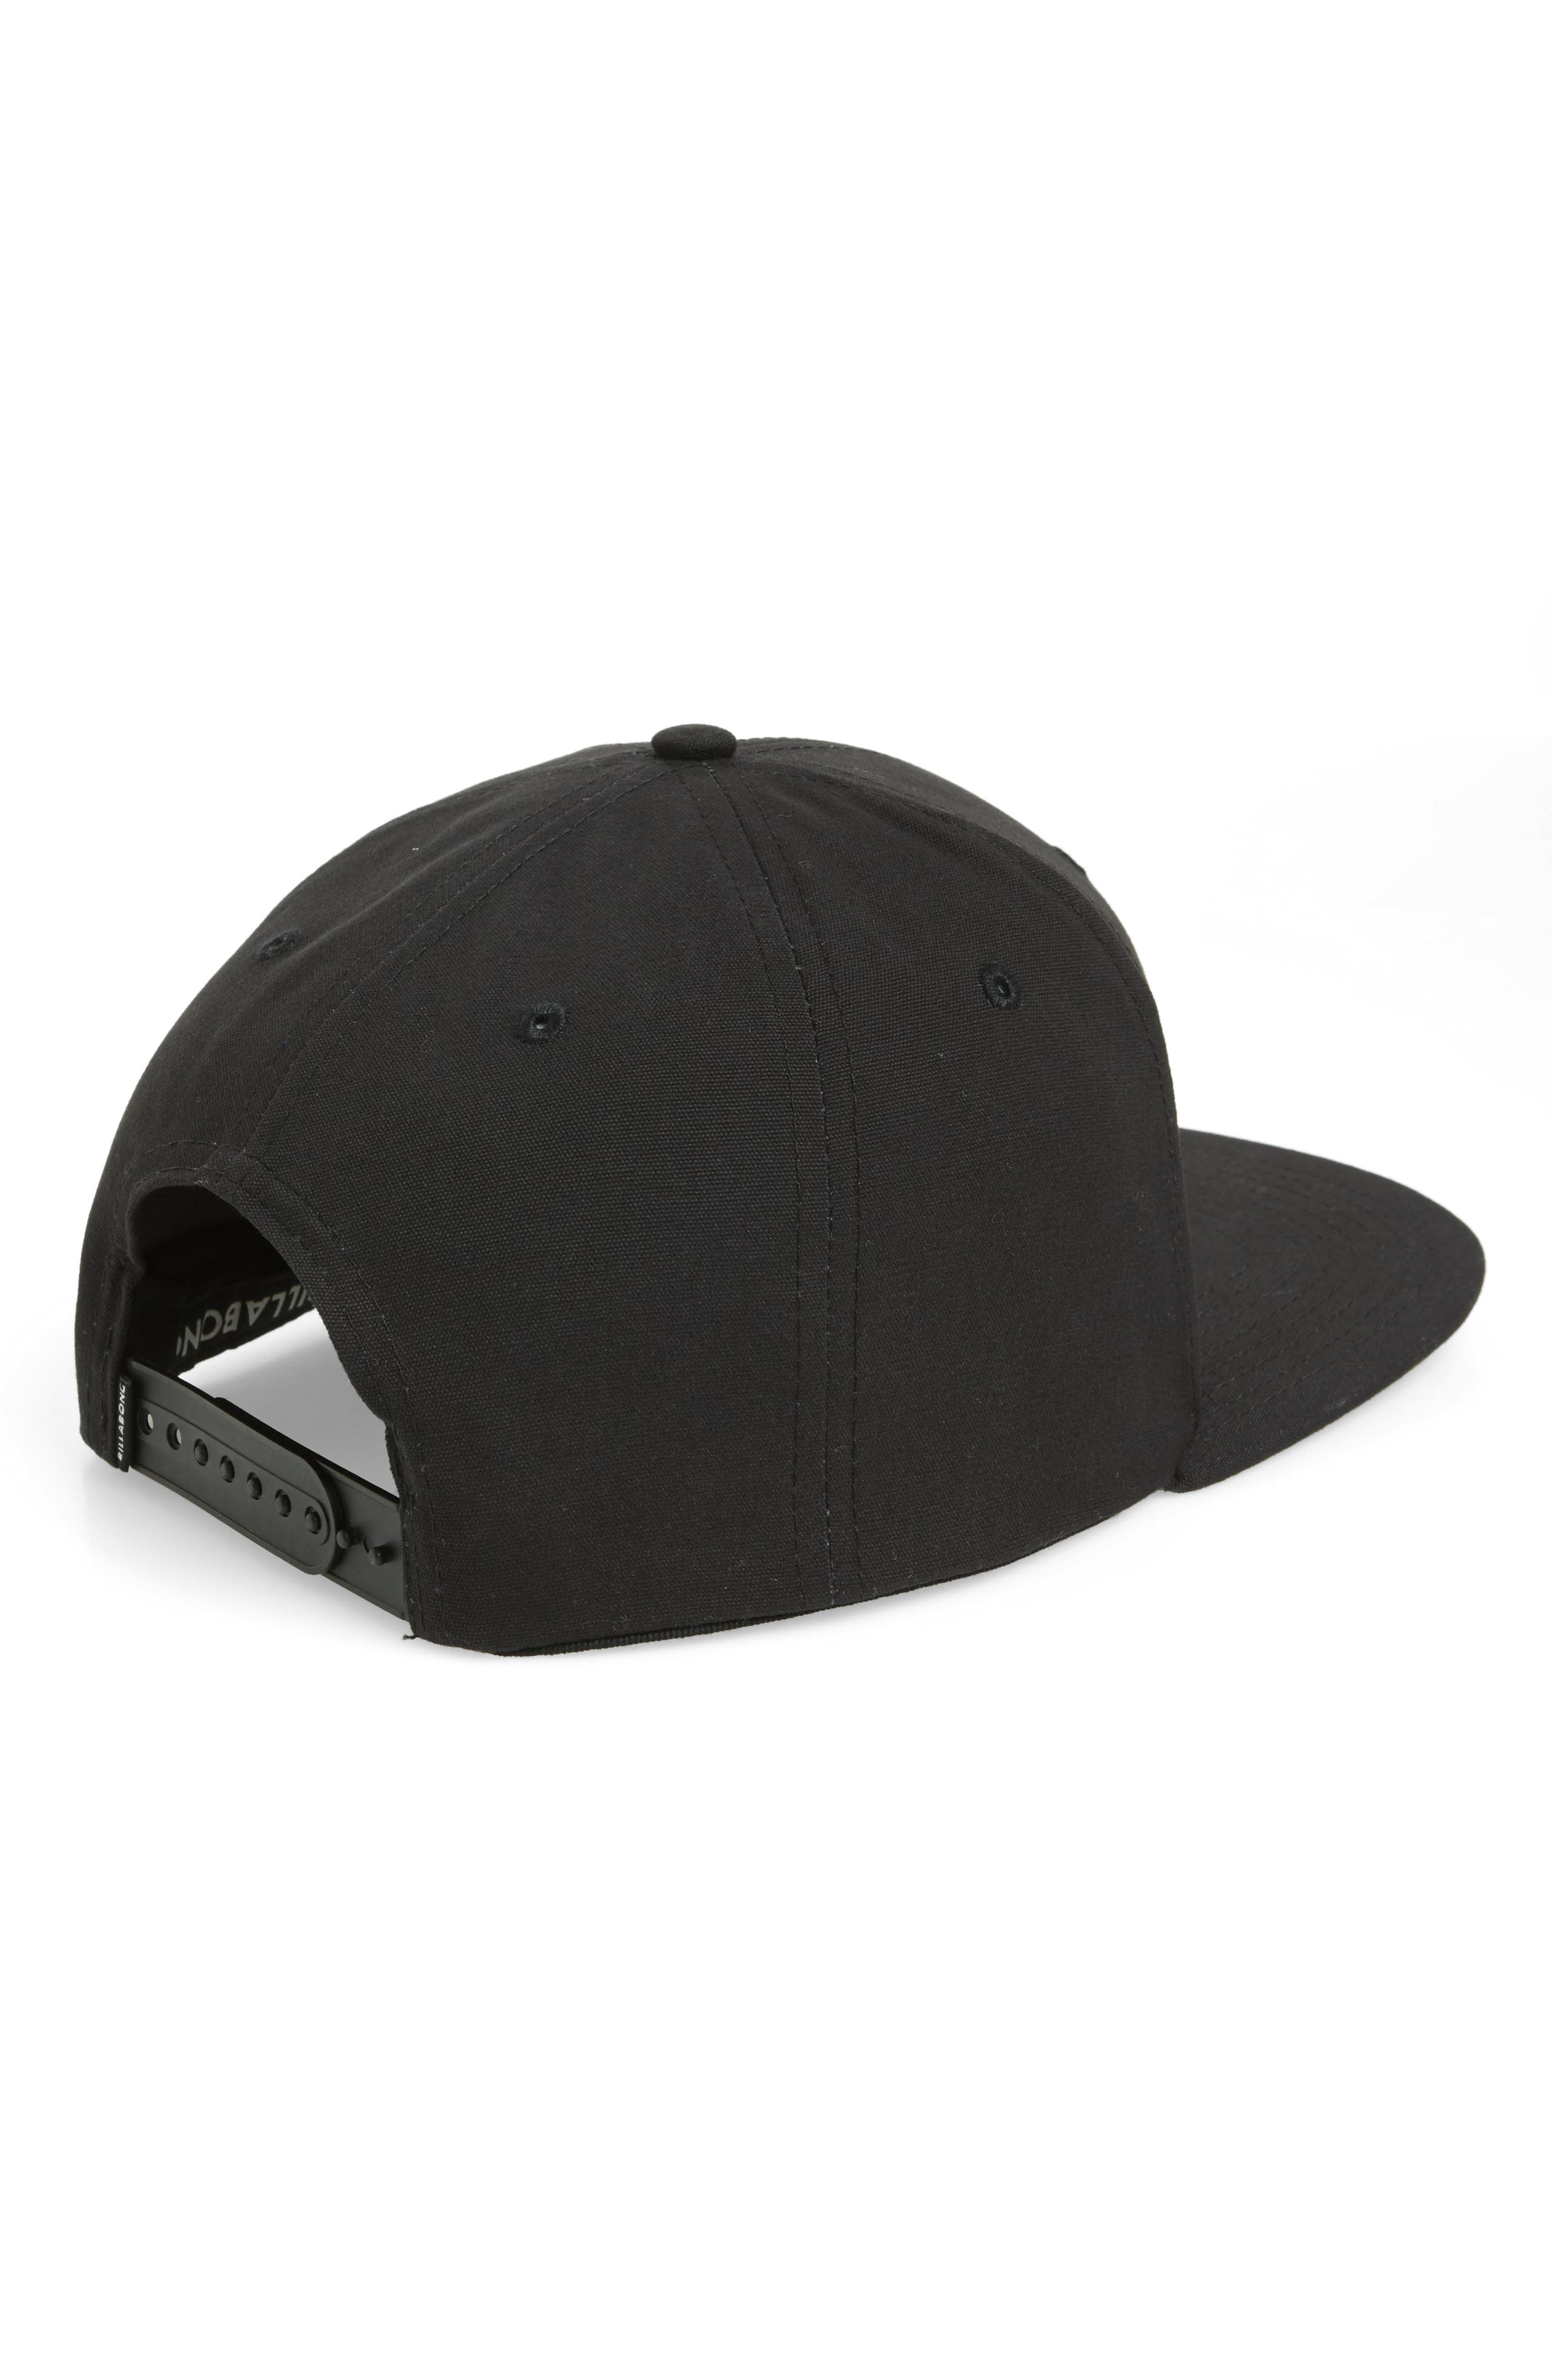 All Day Snapback Baseball Cap,                             Alternate thumbnail 5, color,                             Stealth